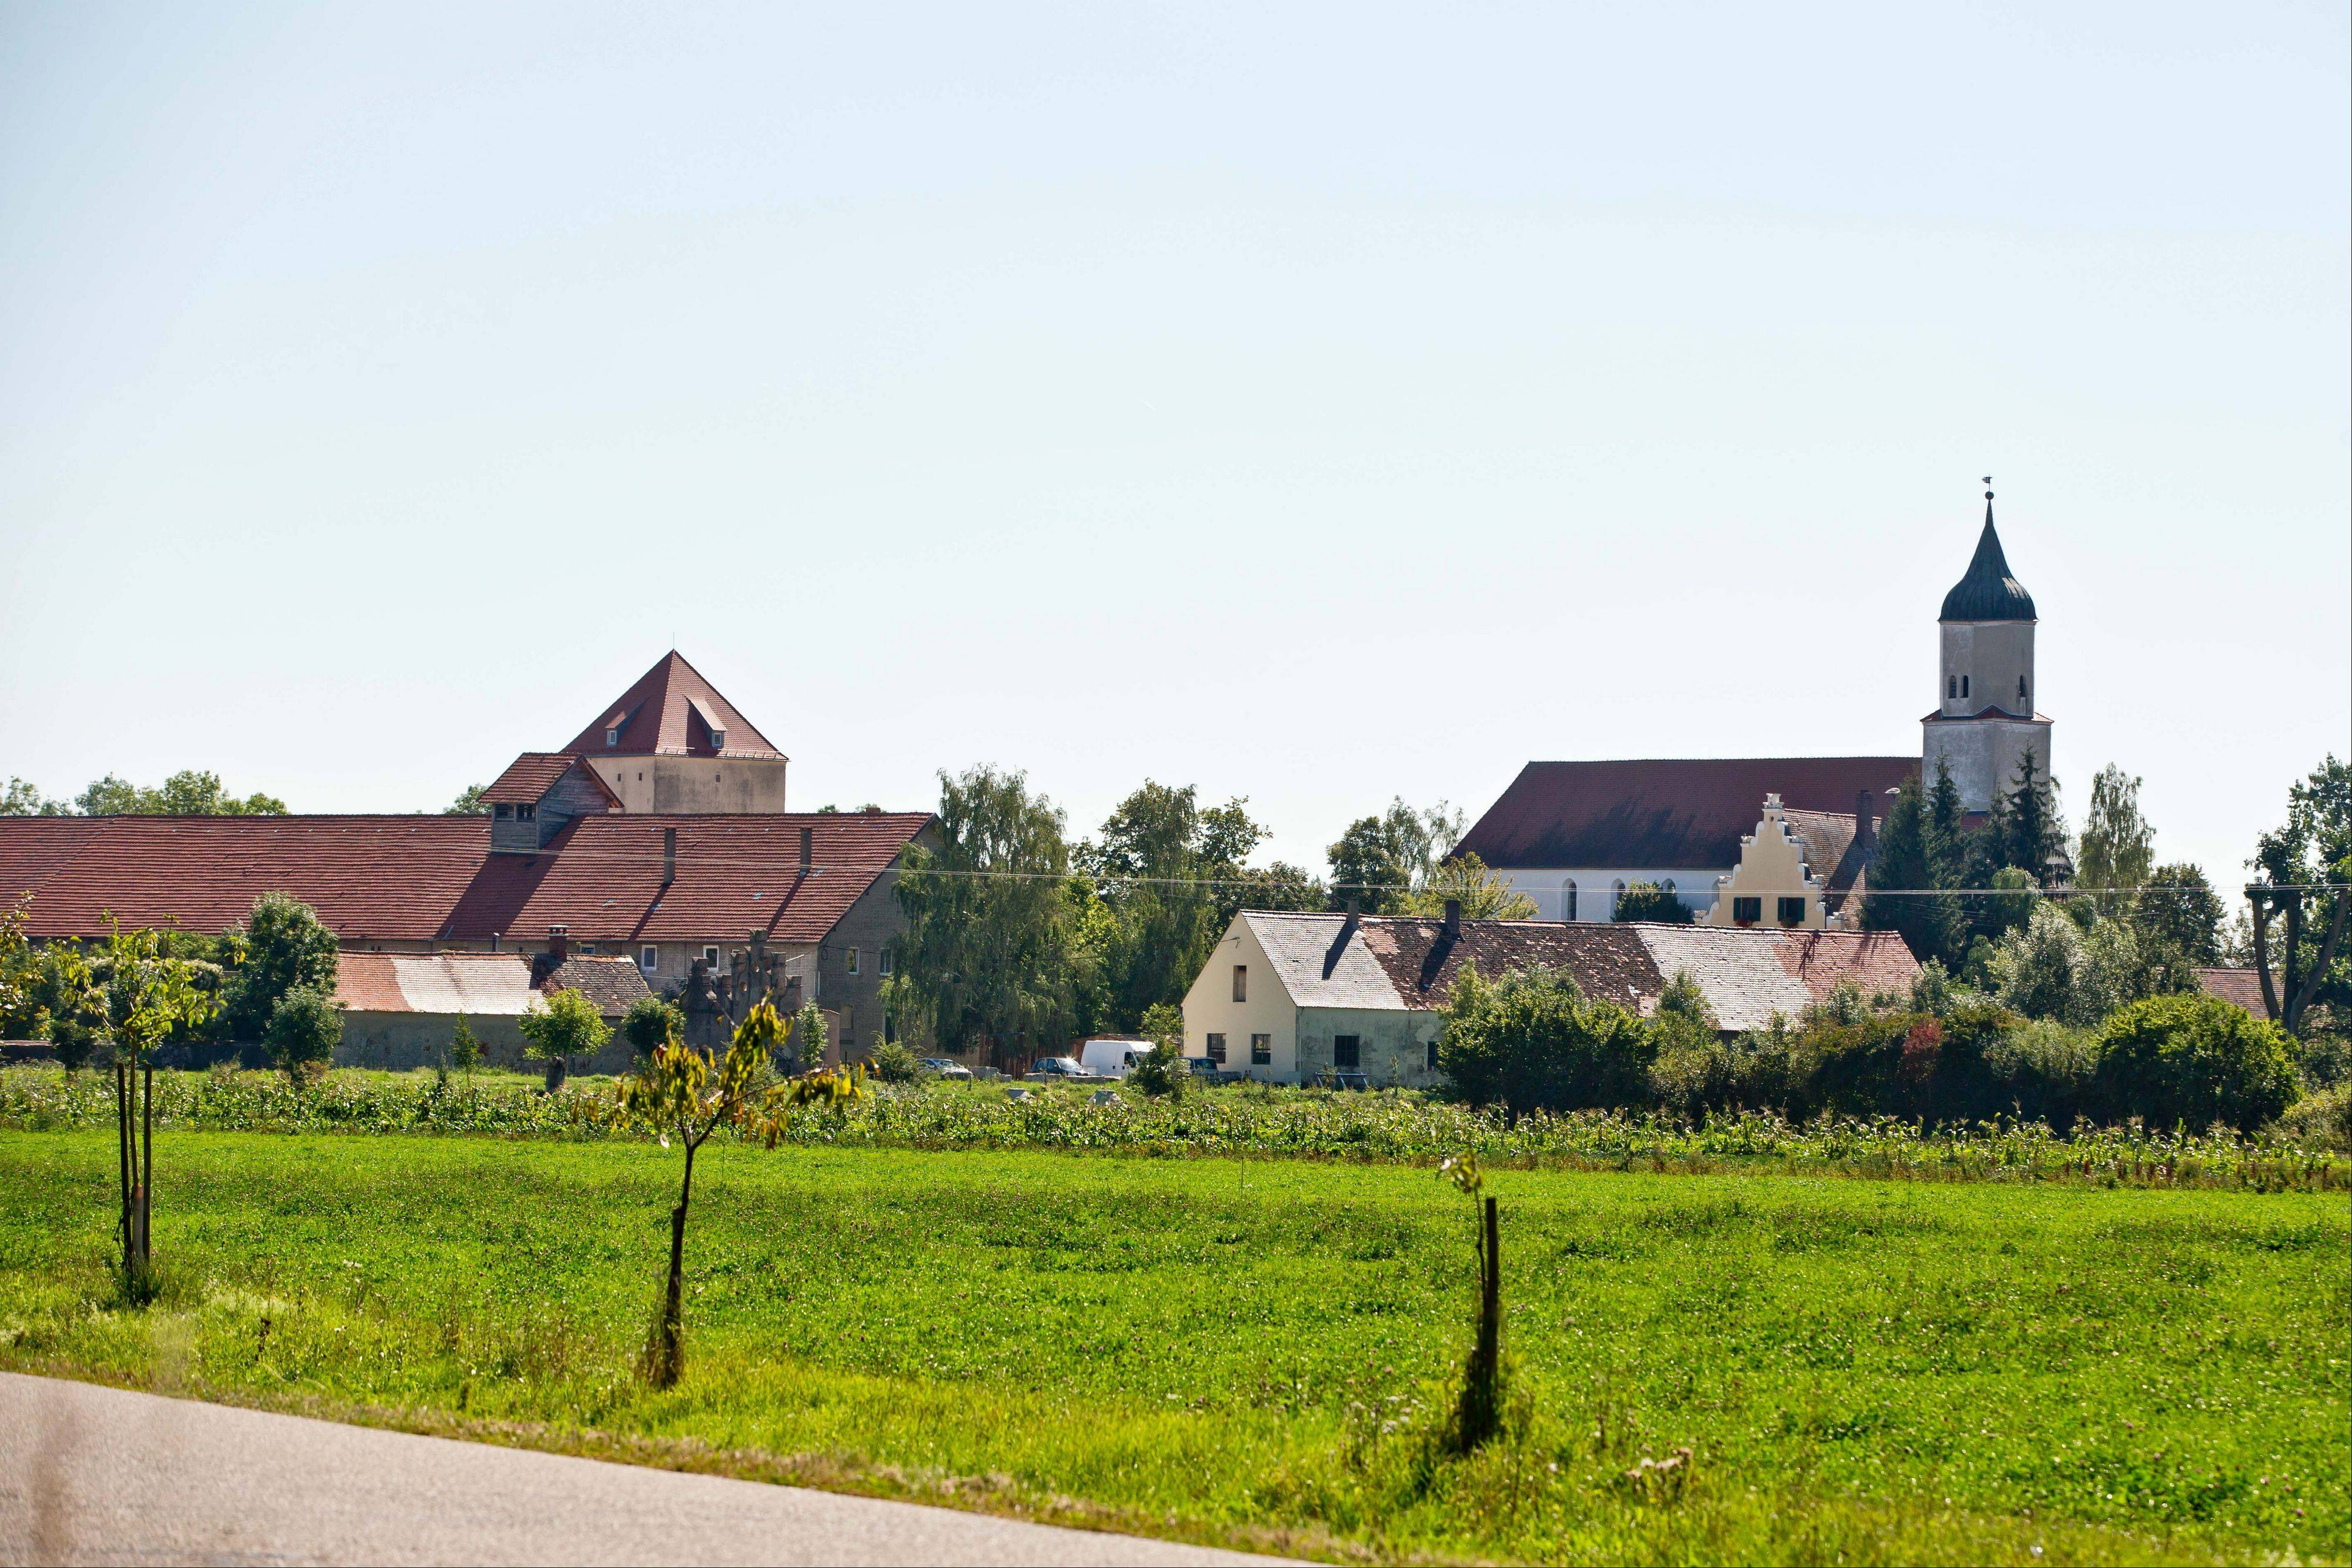 This picture taken Thursday, Sept. 5, shows the village of Klosterzimmern near Deiningen, Germany, which is one of the homes of the �Twelve Tribes� sect. Police say they have raided the Christian religious sect in Bavaria and taken 40 children from them on allegations that they were being physically abused.